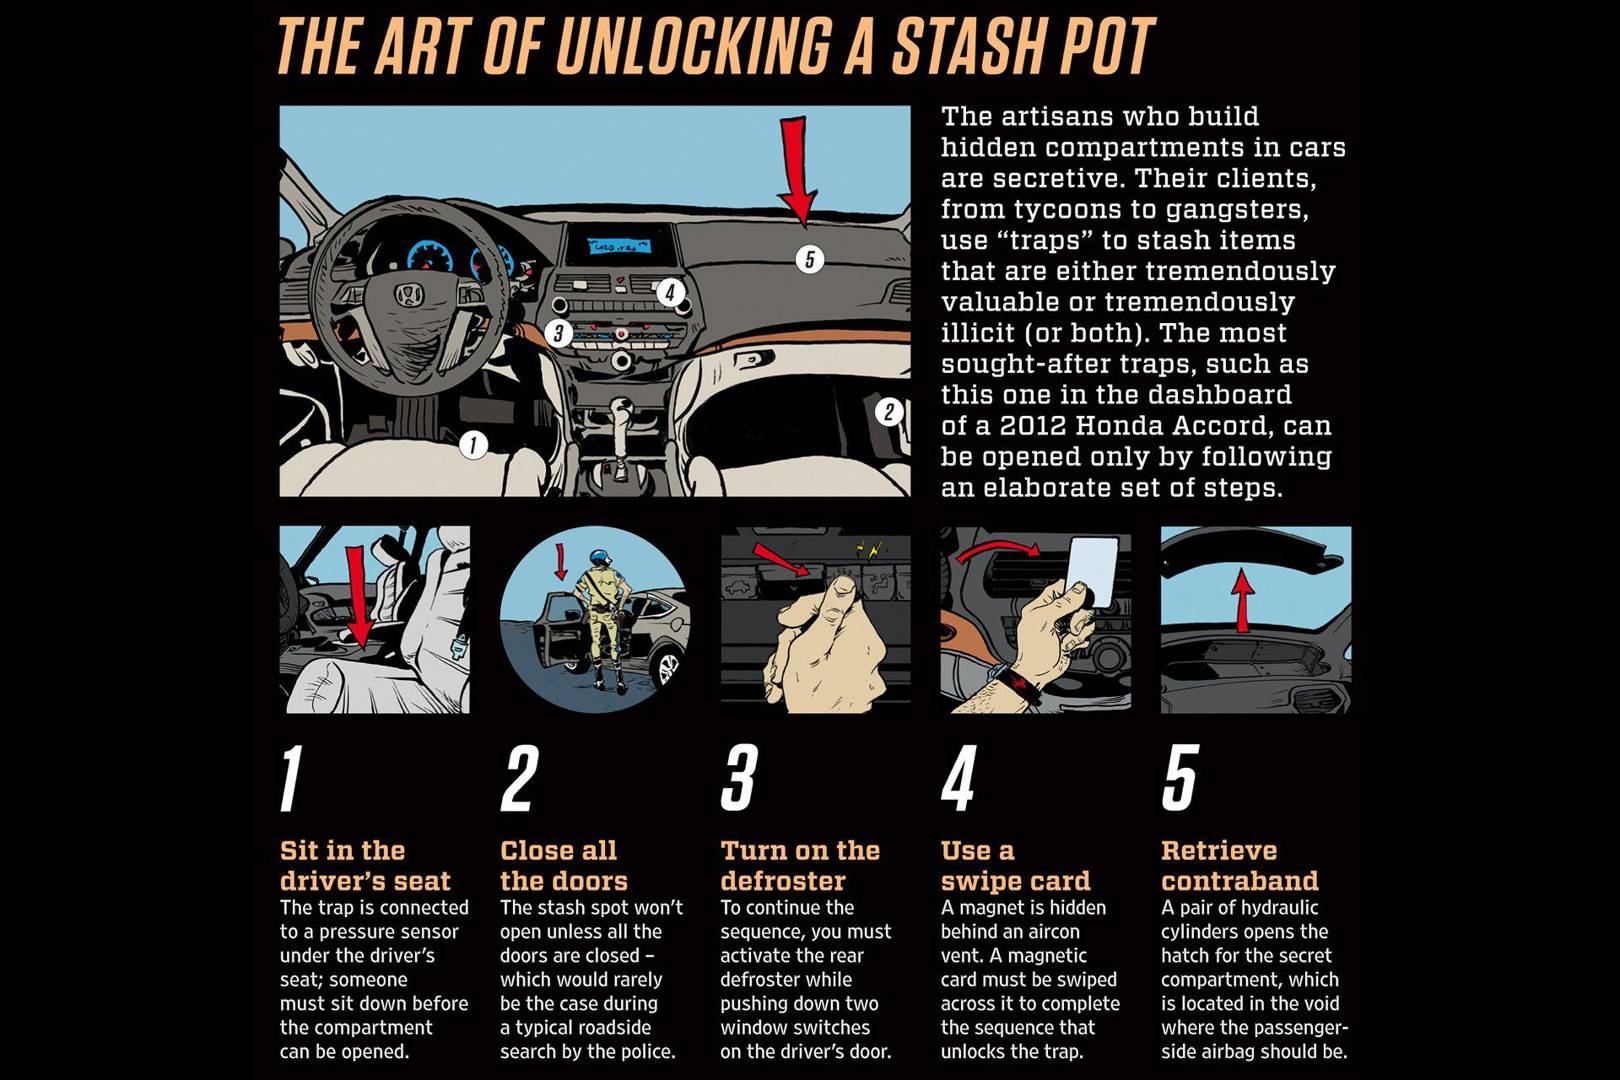 See no evil: car hacking and the laws of hidden compartments